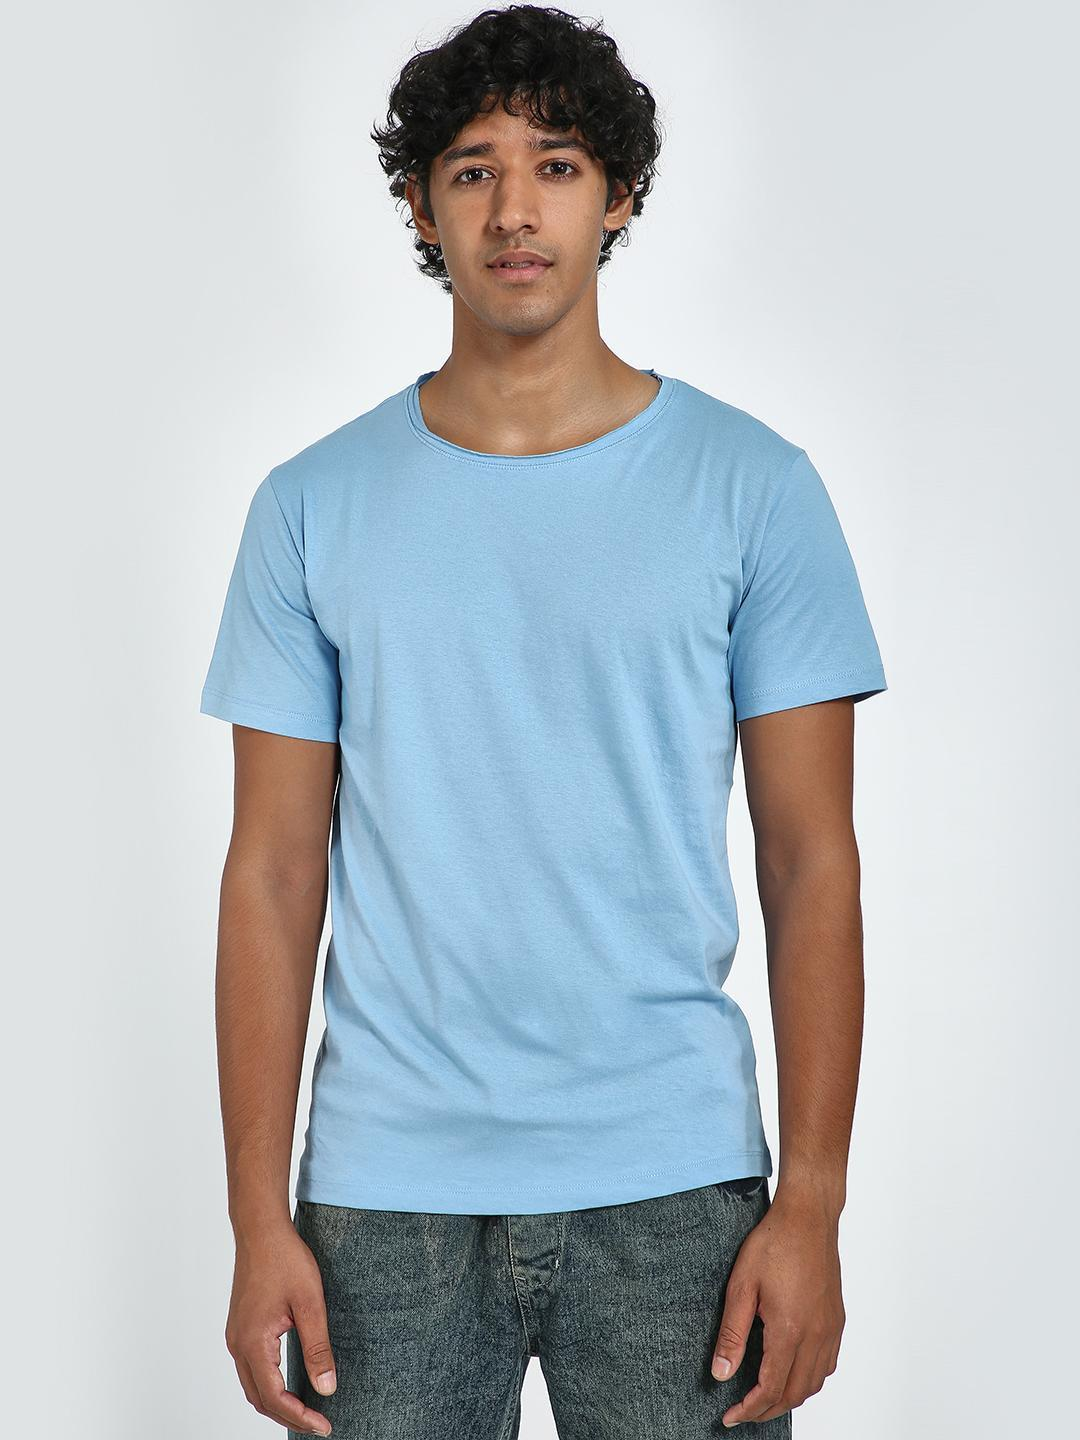 Blue Saint Blue Textured Round Neck T-Shirt 1